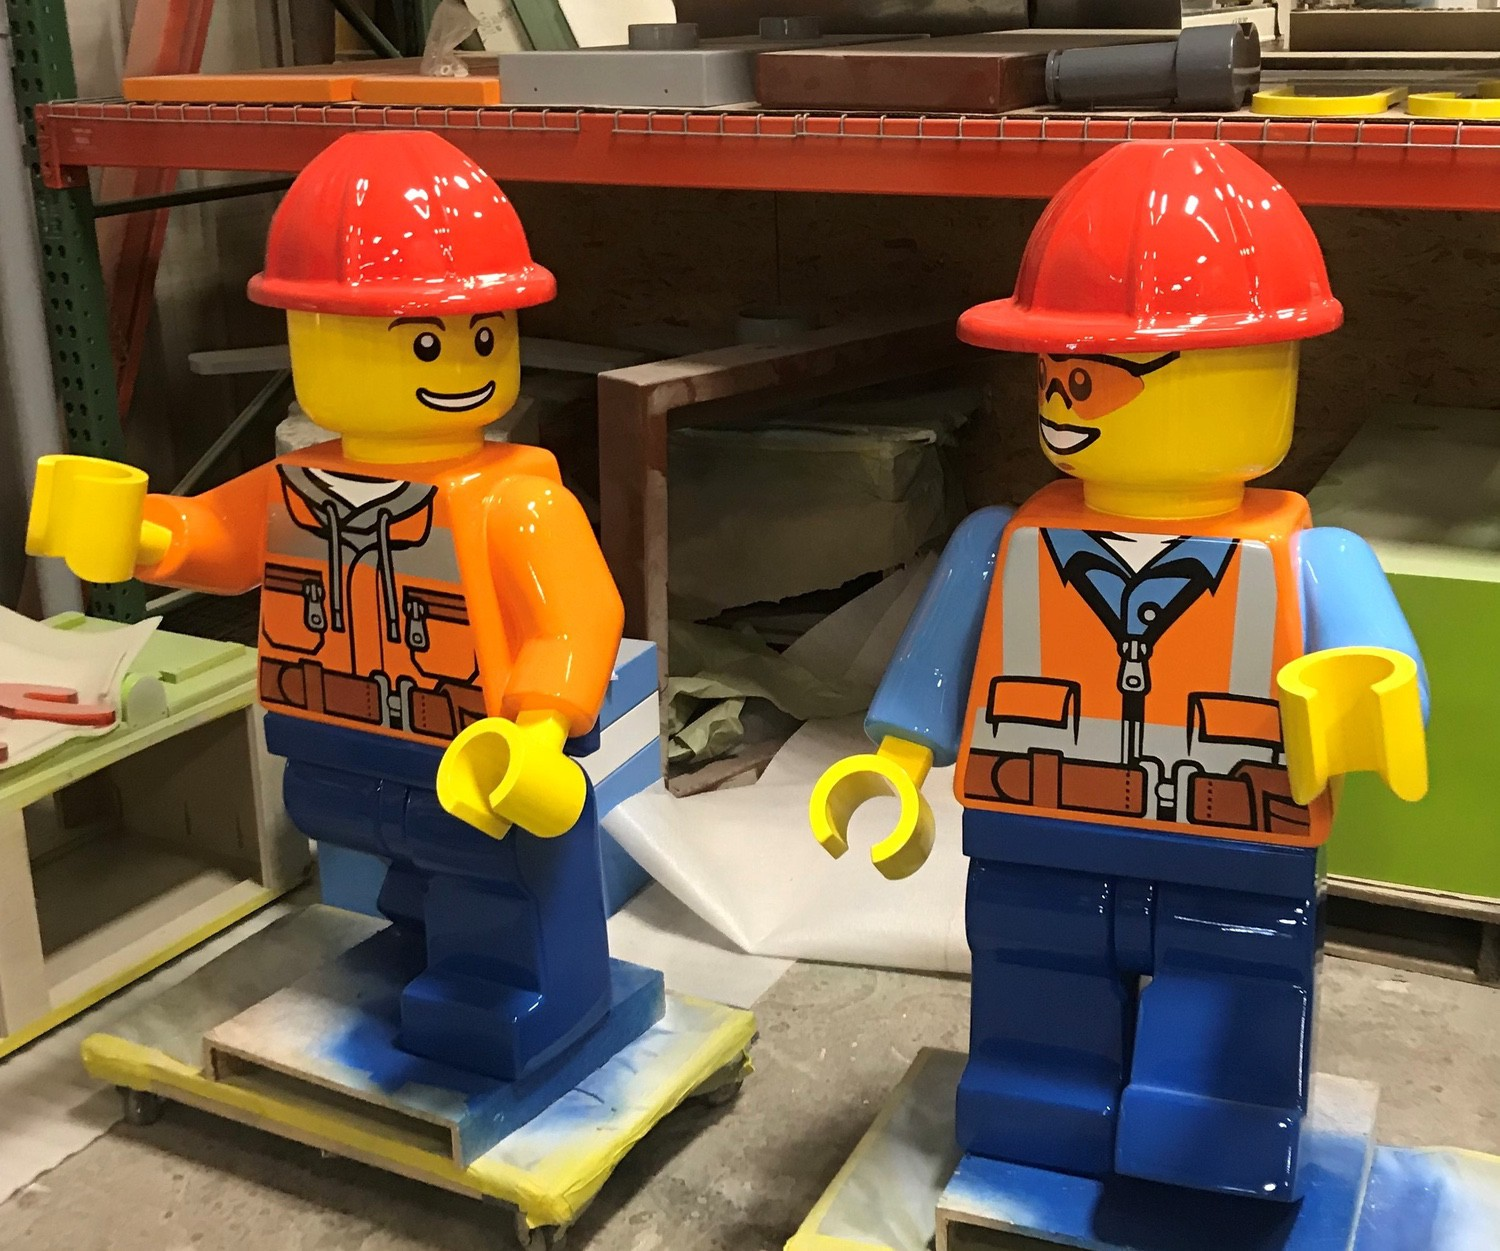 Construction Worker – 1 & 2